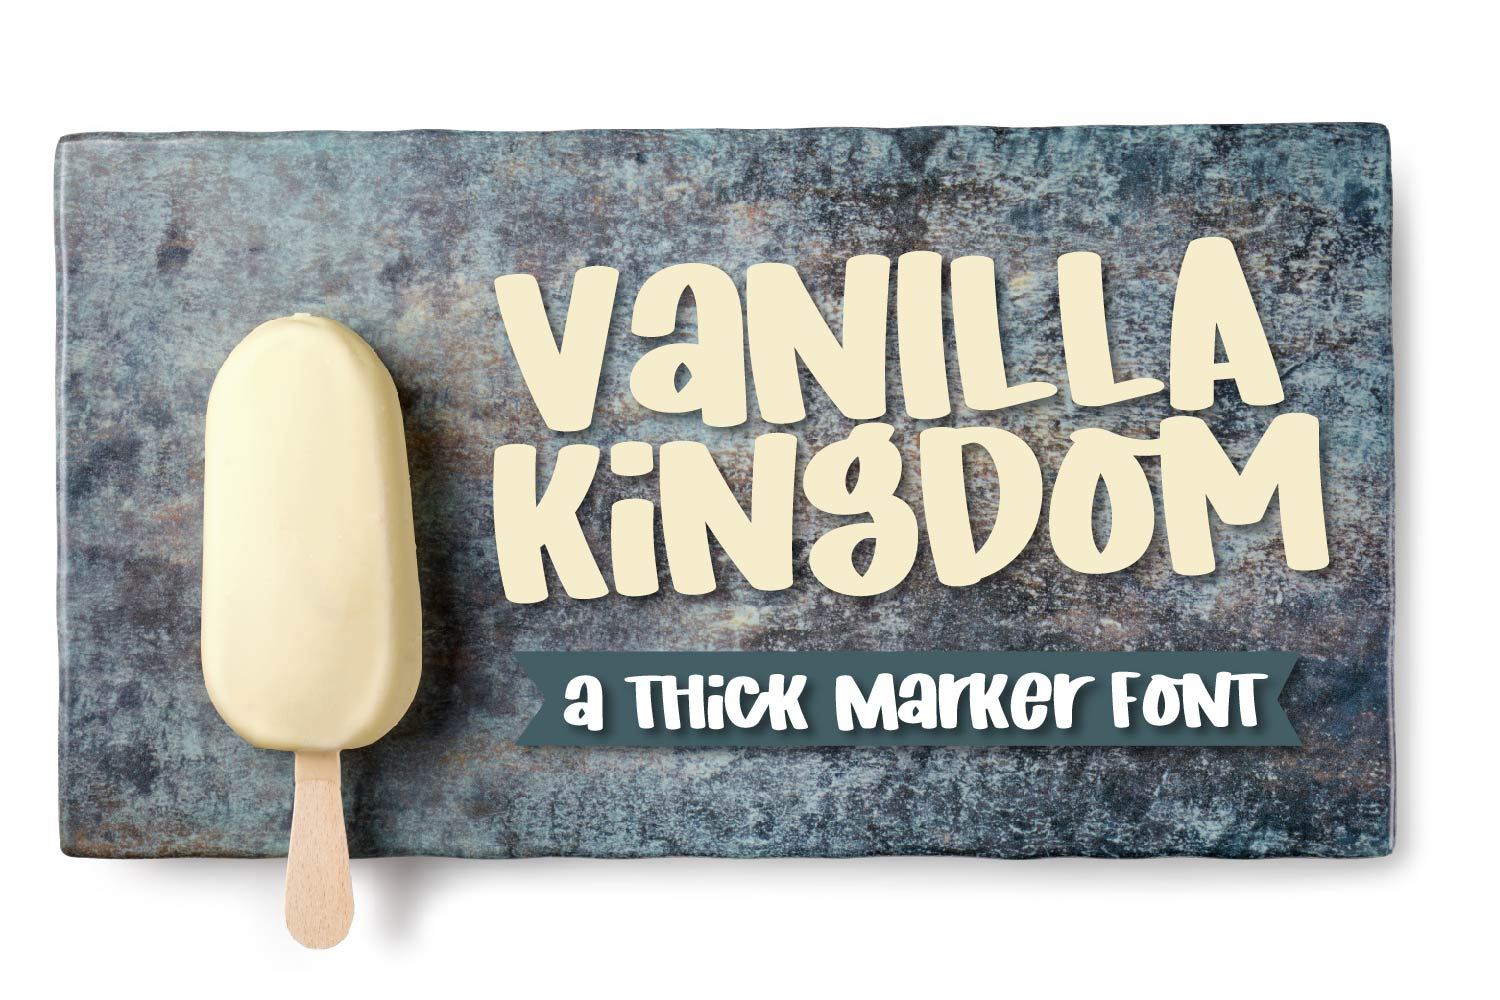 Vanilla Kingdom - A Thick Marker Font example image 1